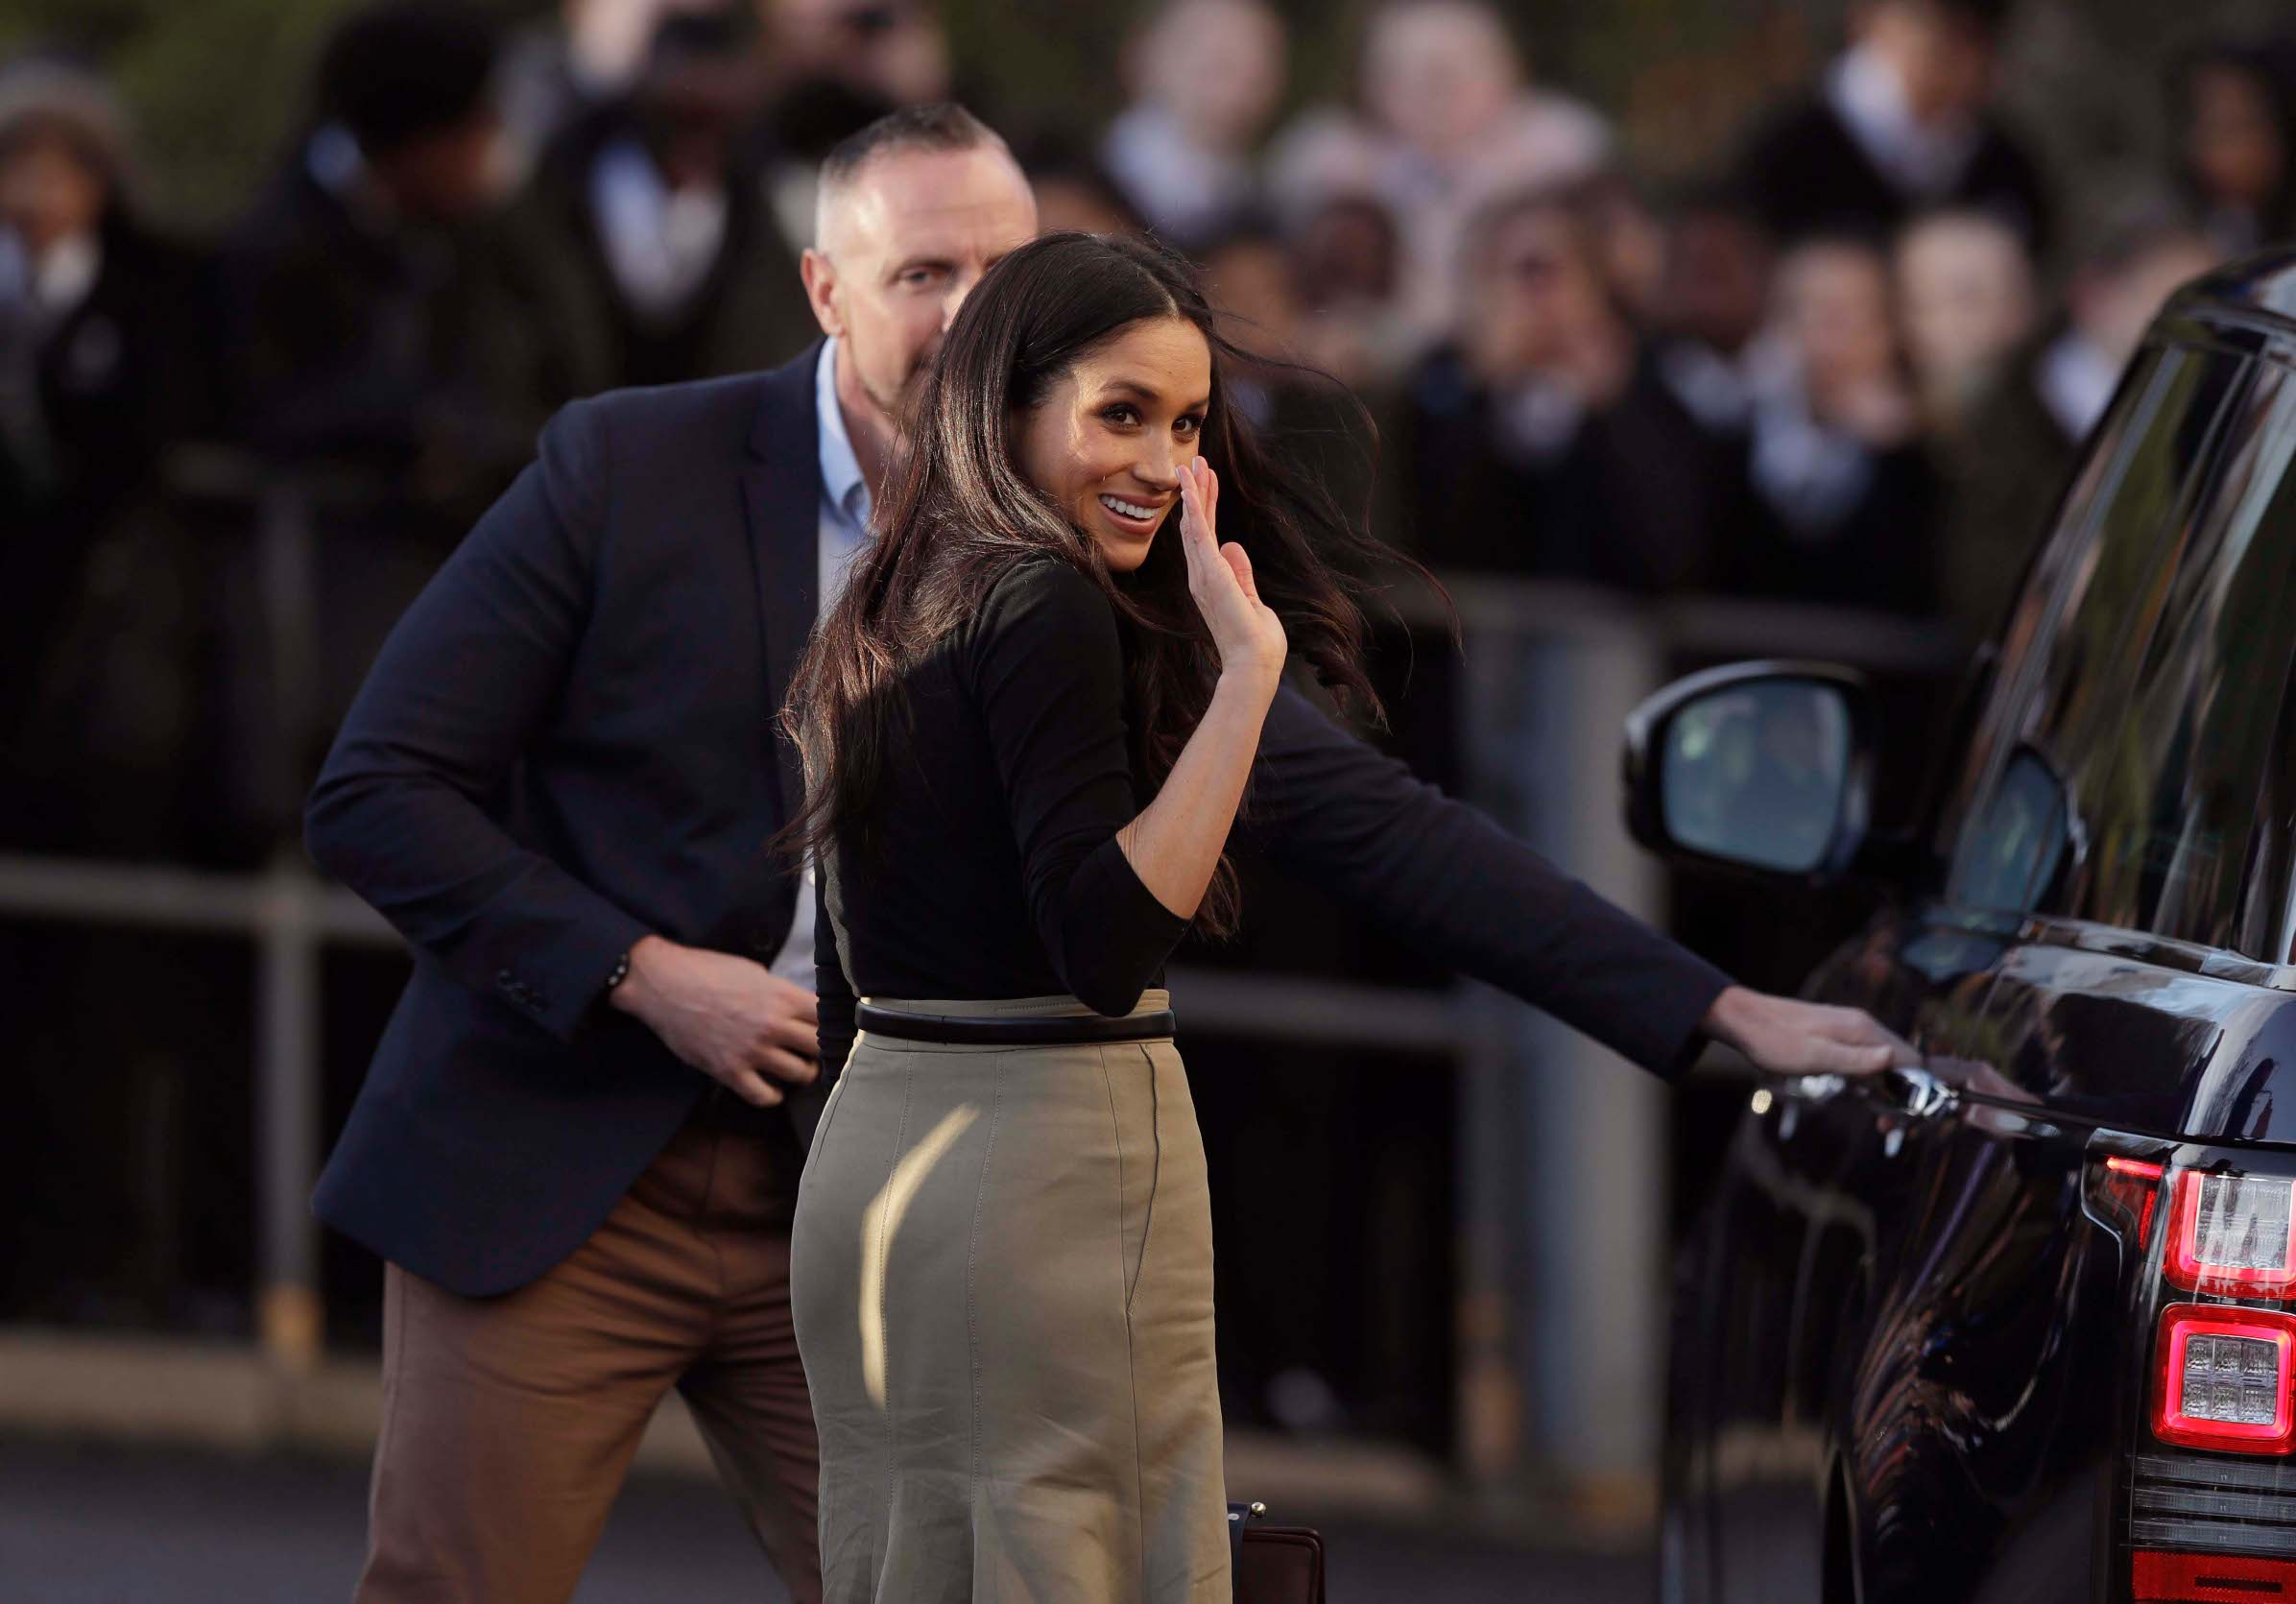 NOTTINGHAM, ENGLAND - DECEMBER 01:  US actress Meghan Markle waves as she leaves with Prince Harry (not seen) after watching a hip hop opera performed by young people involved in the Full Effect programme at the Nottingham Academy school on December 1, 2017 in Nottingham, England.  Prince Harry and Meghan Markle announced their engagement on Monday 27th November 2017 and will marry at St George's Chapel, Windsor in May 2018.  (Photo by Matt Dunham - WPA Pool/Getty Images)